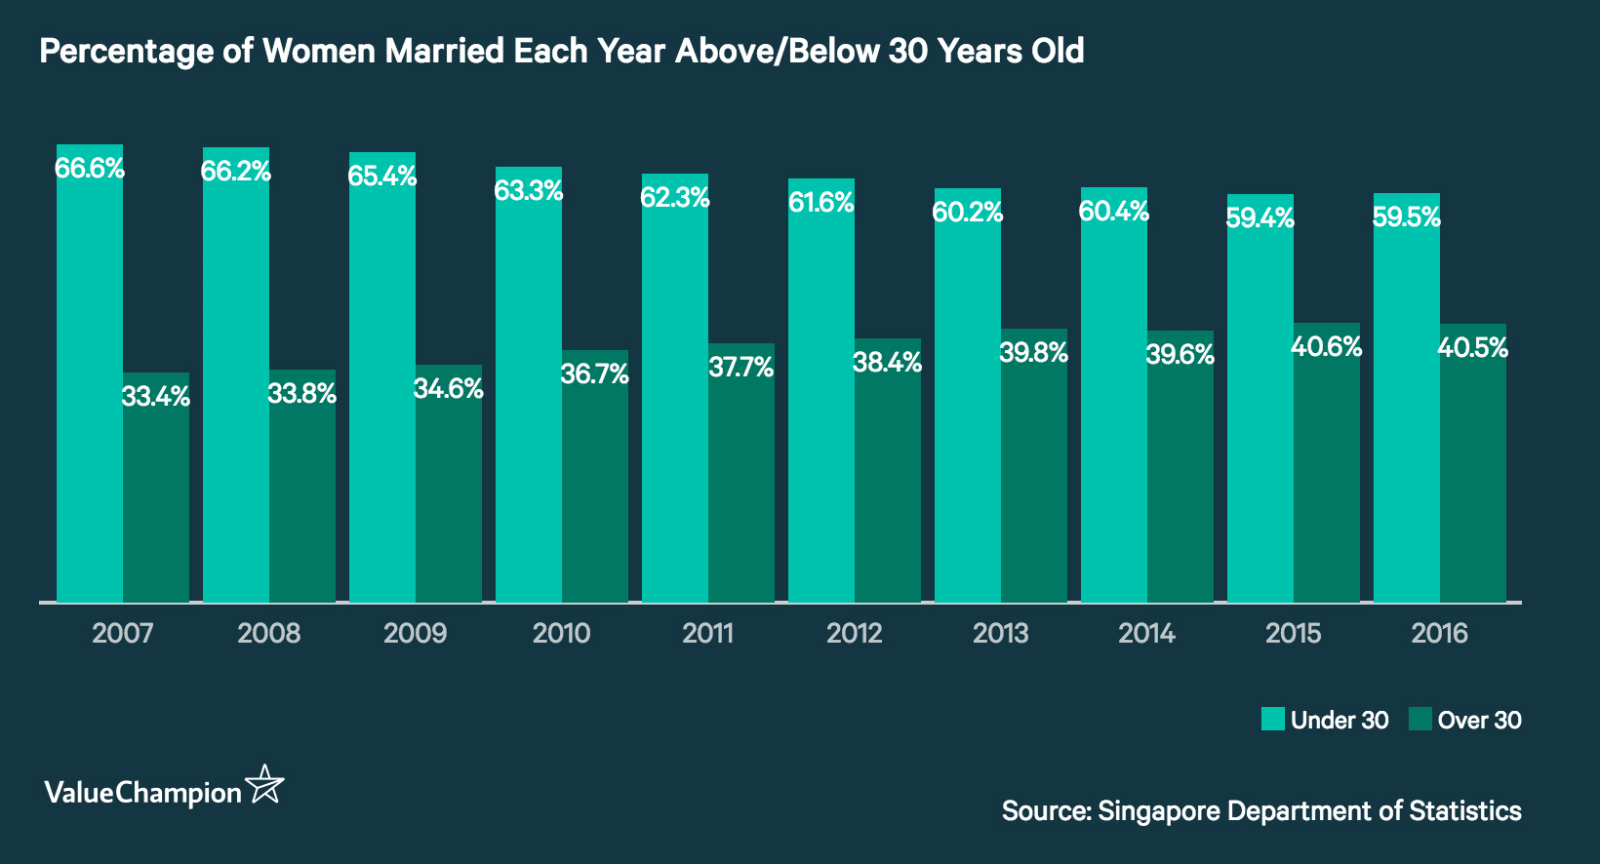 Percentage of Women Married Each Year Above/Below 30 Years Old